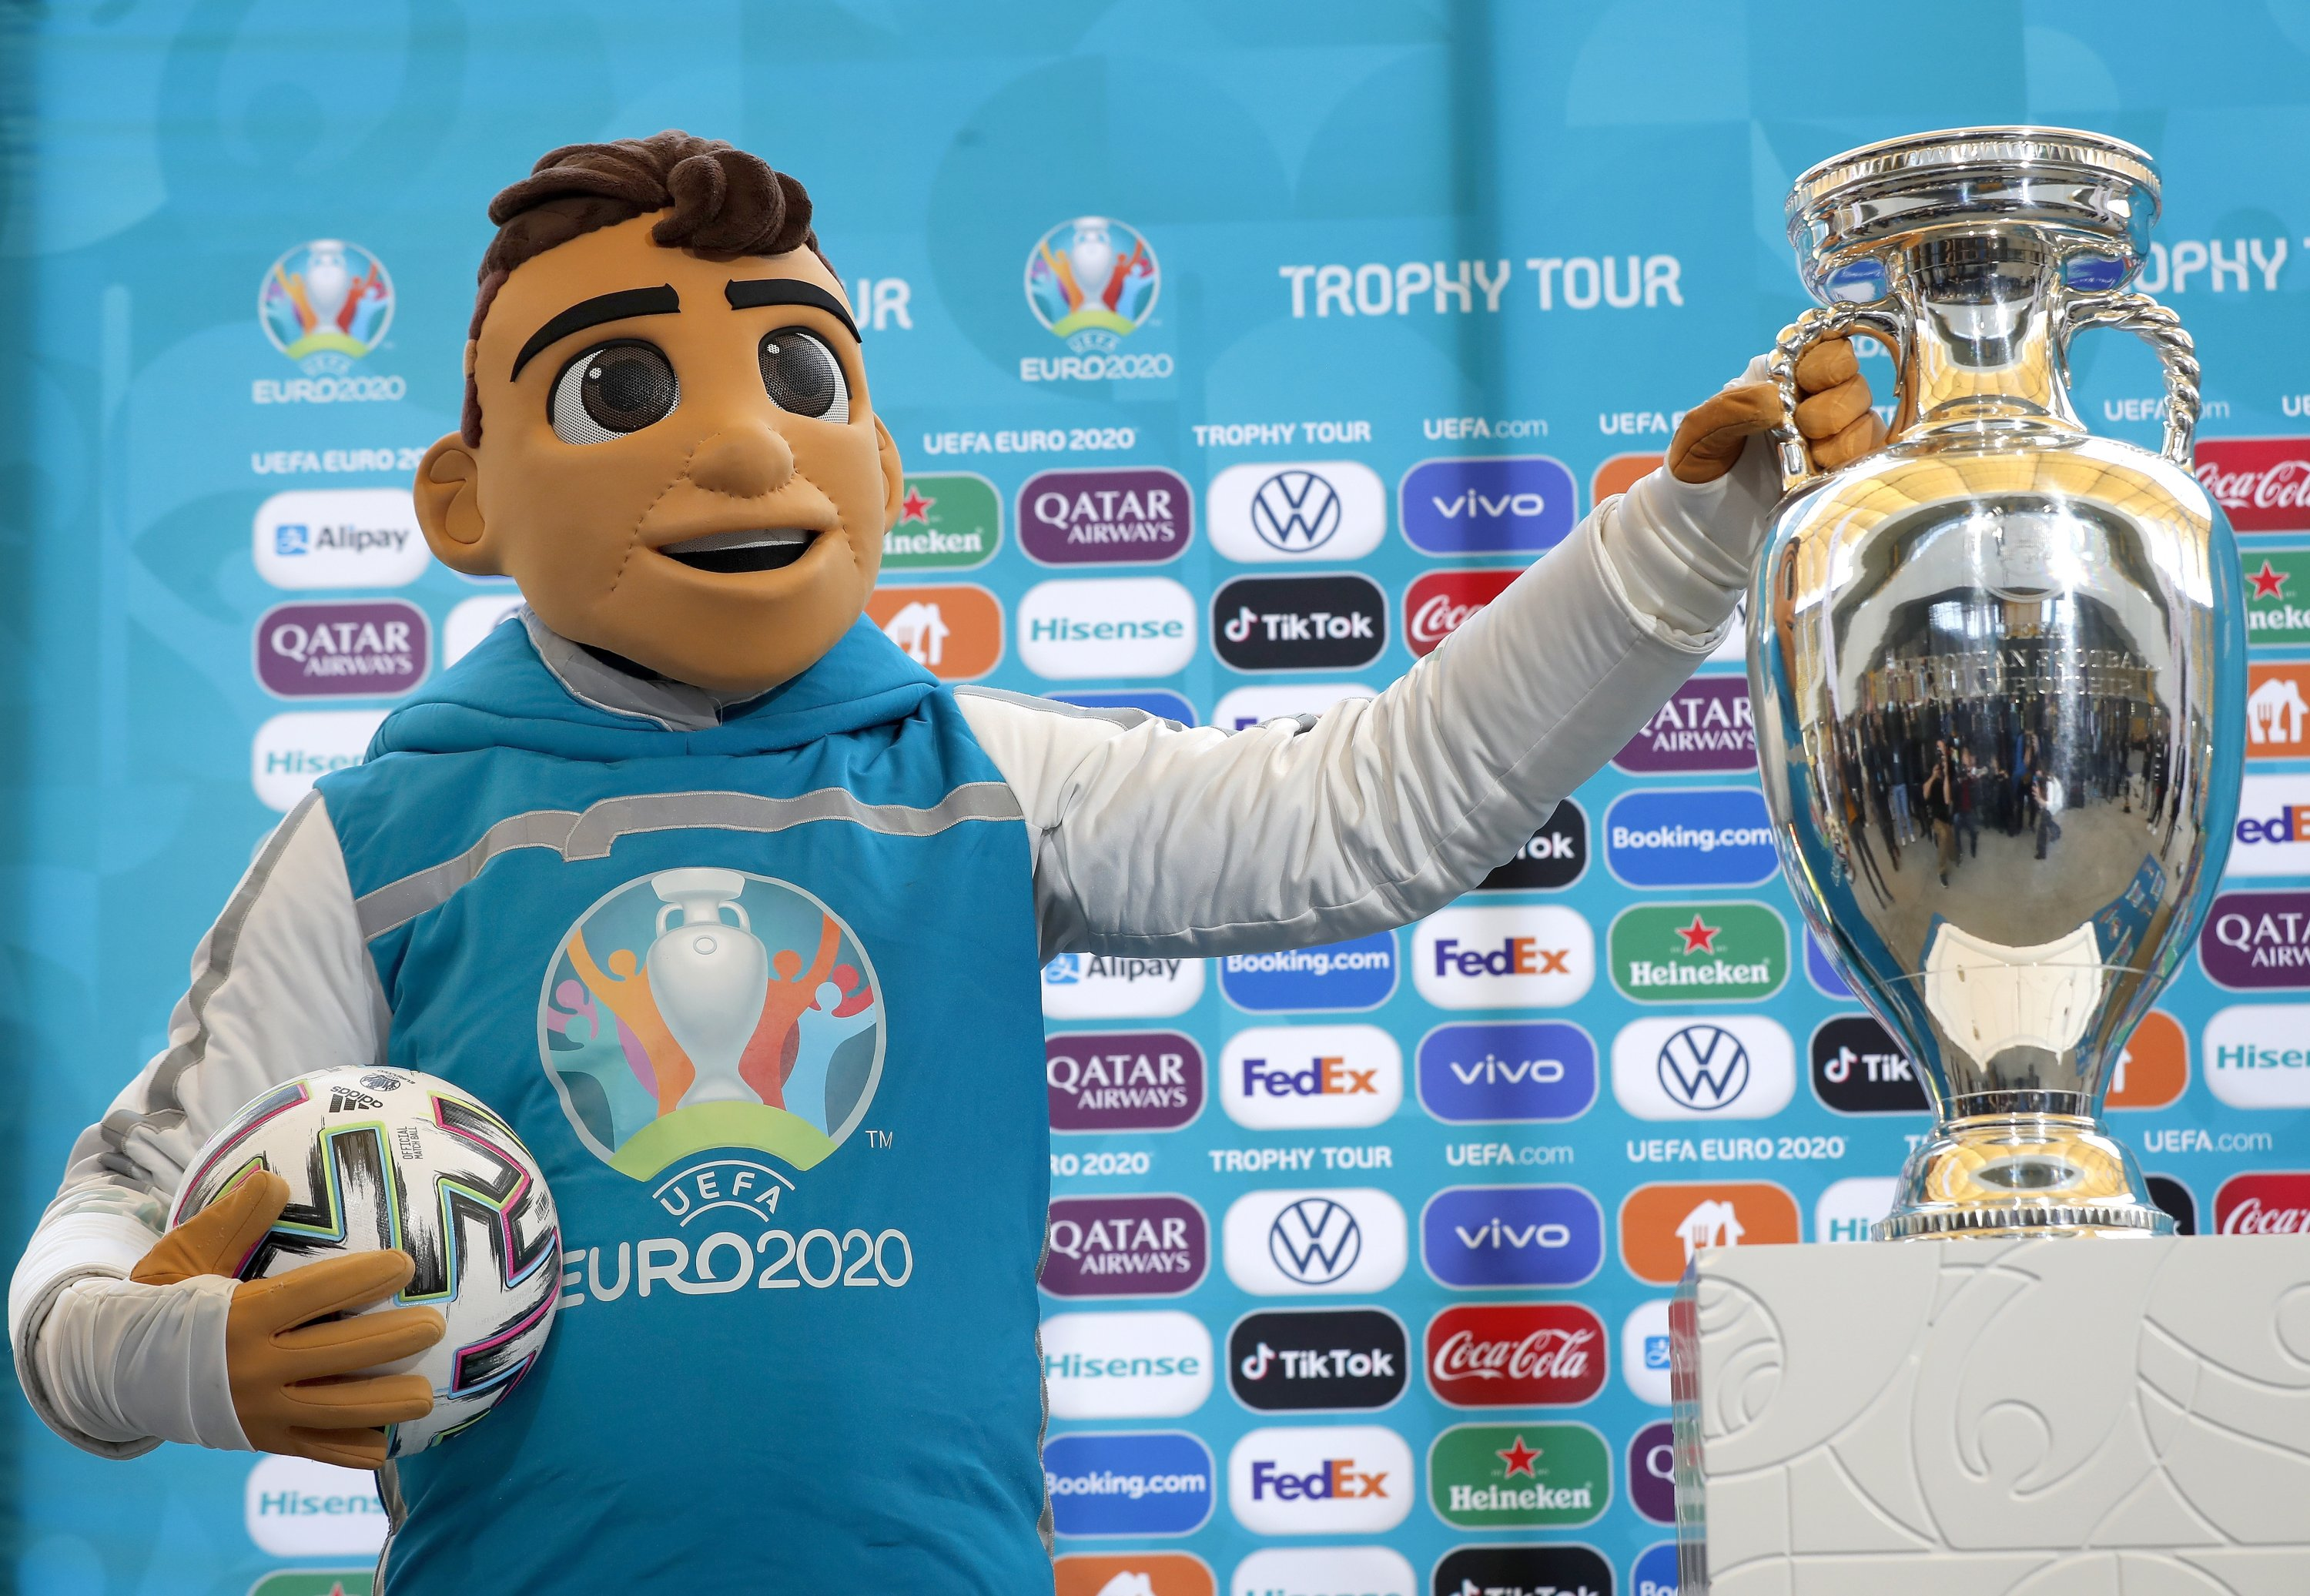 The UEFA Euro 2020 mascot Skillzy poses with the Trophy during a presentation ceremony in Bucharest, Romania, April 25, 2021 (EPA Photo)